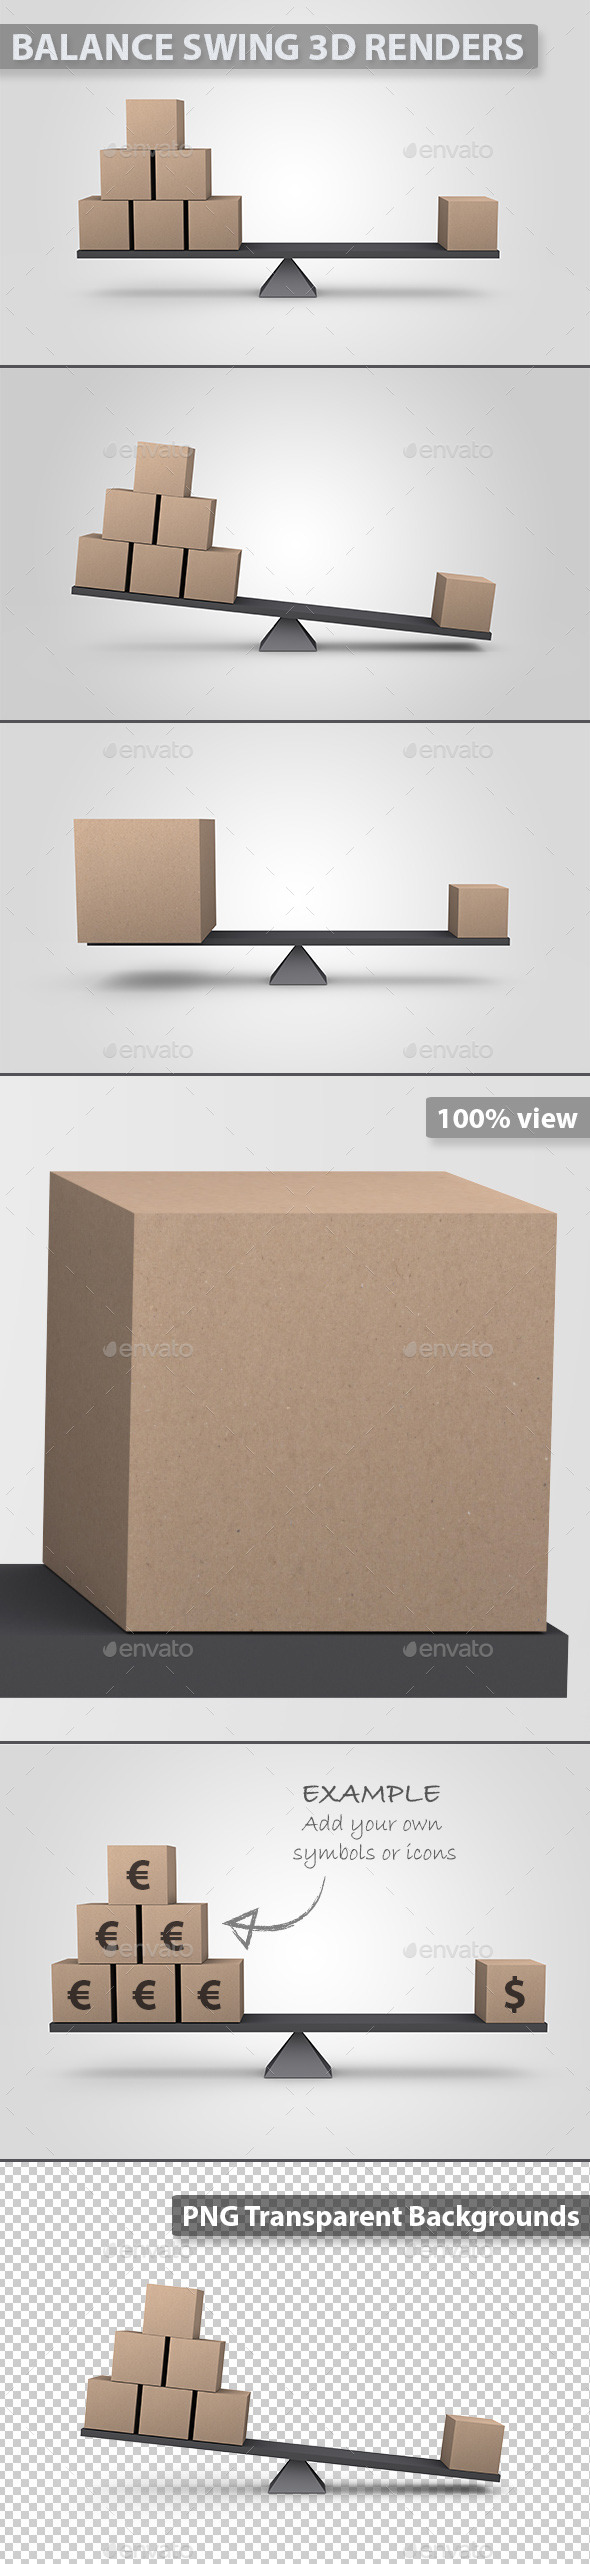 Balanced 3D Cardboard Boxes - Abstract 3D Renders